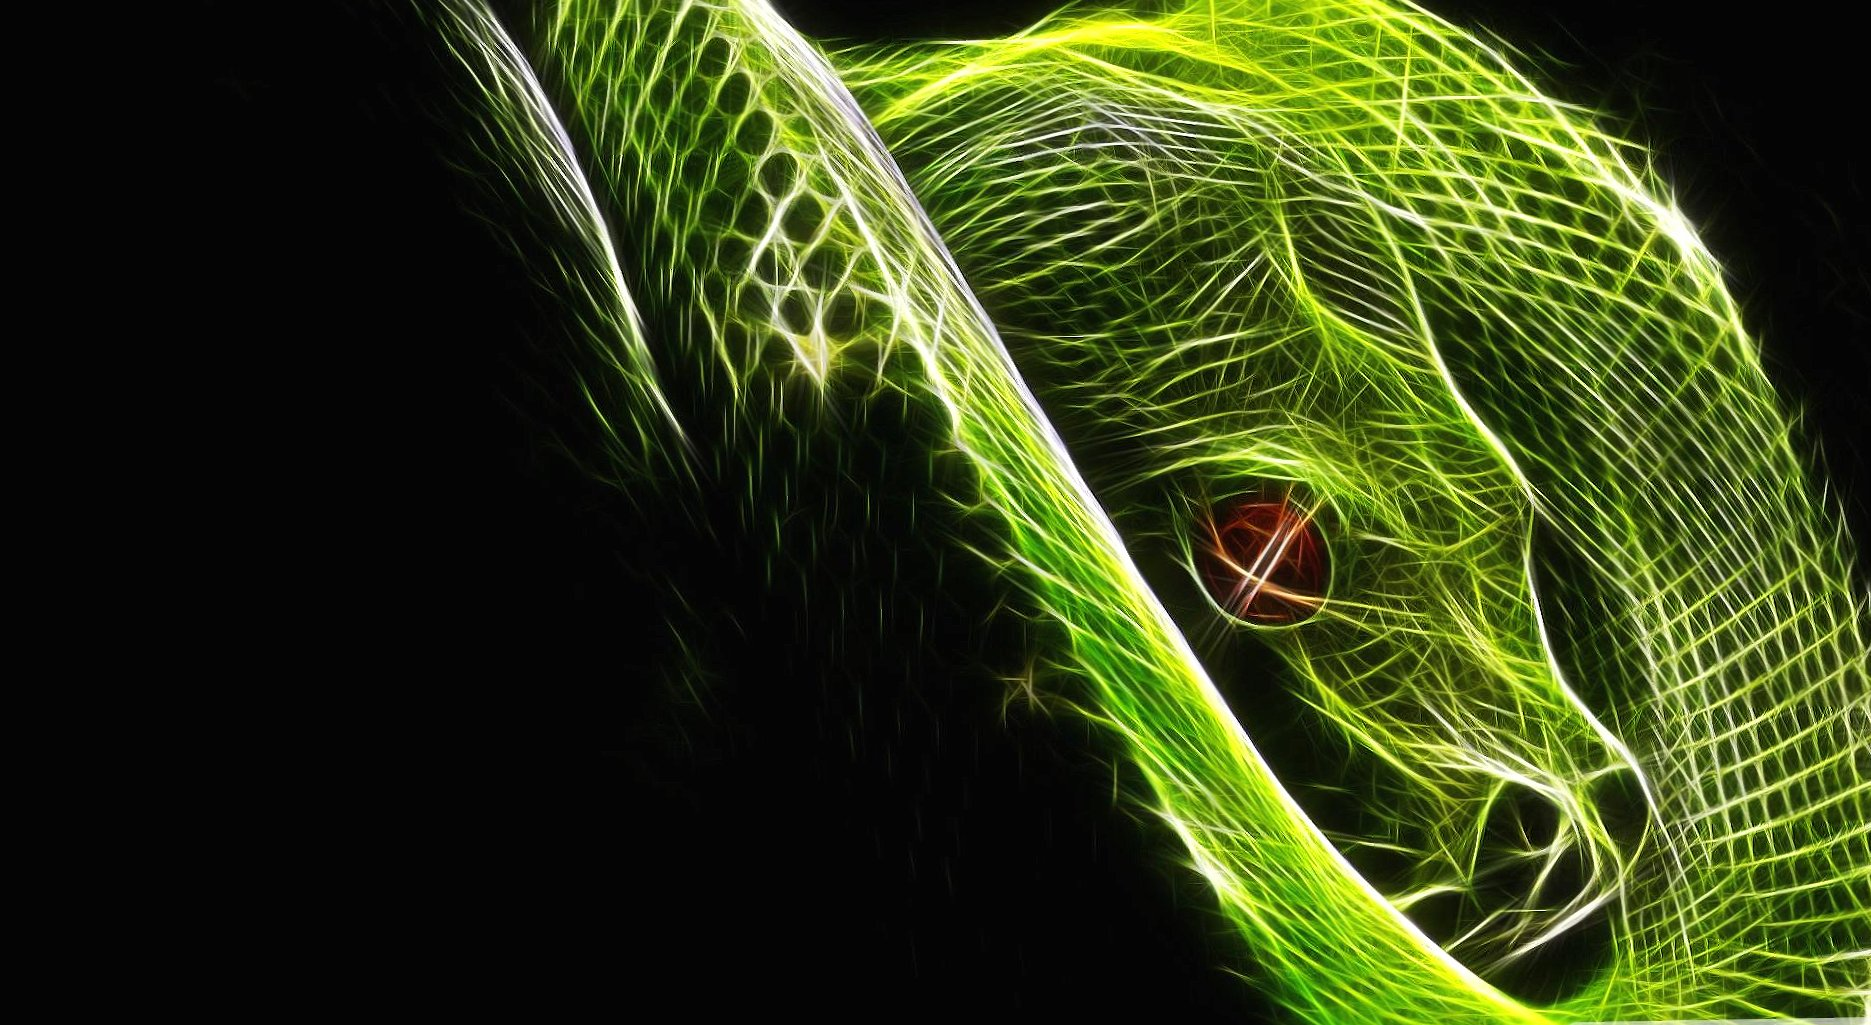 Digital snake wallpapers HD quality